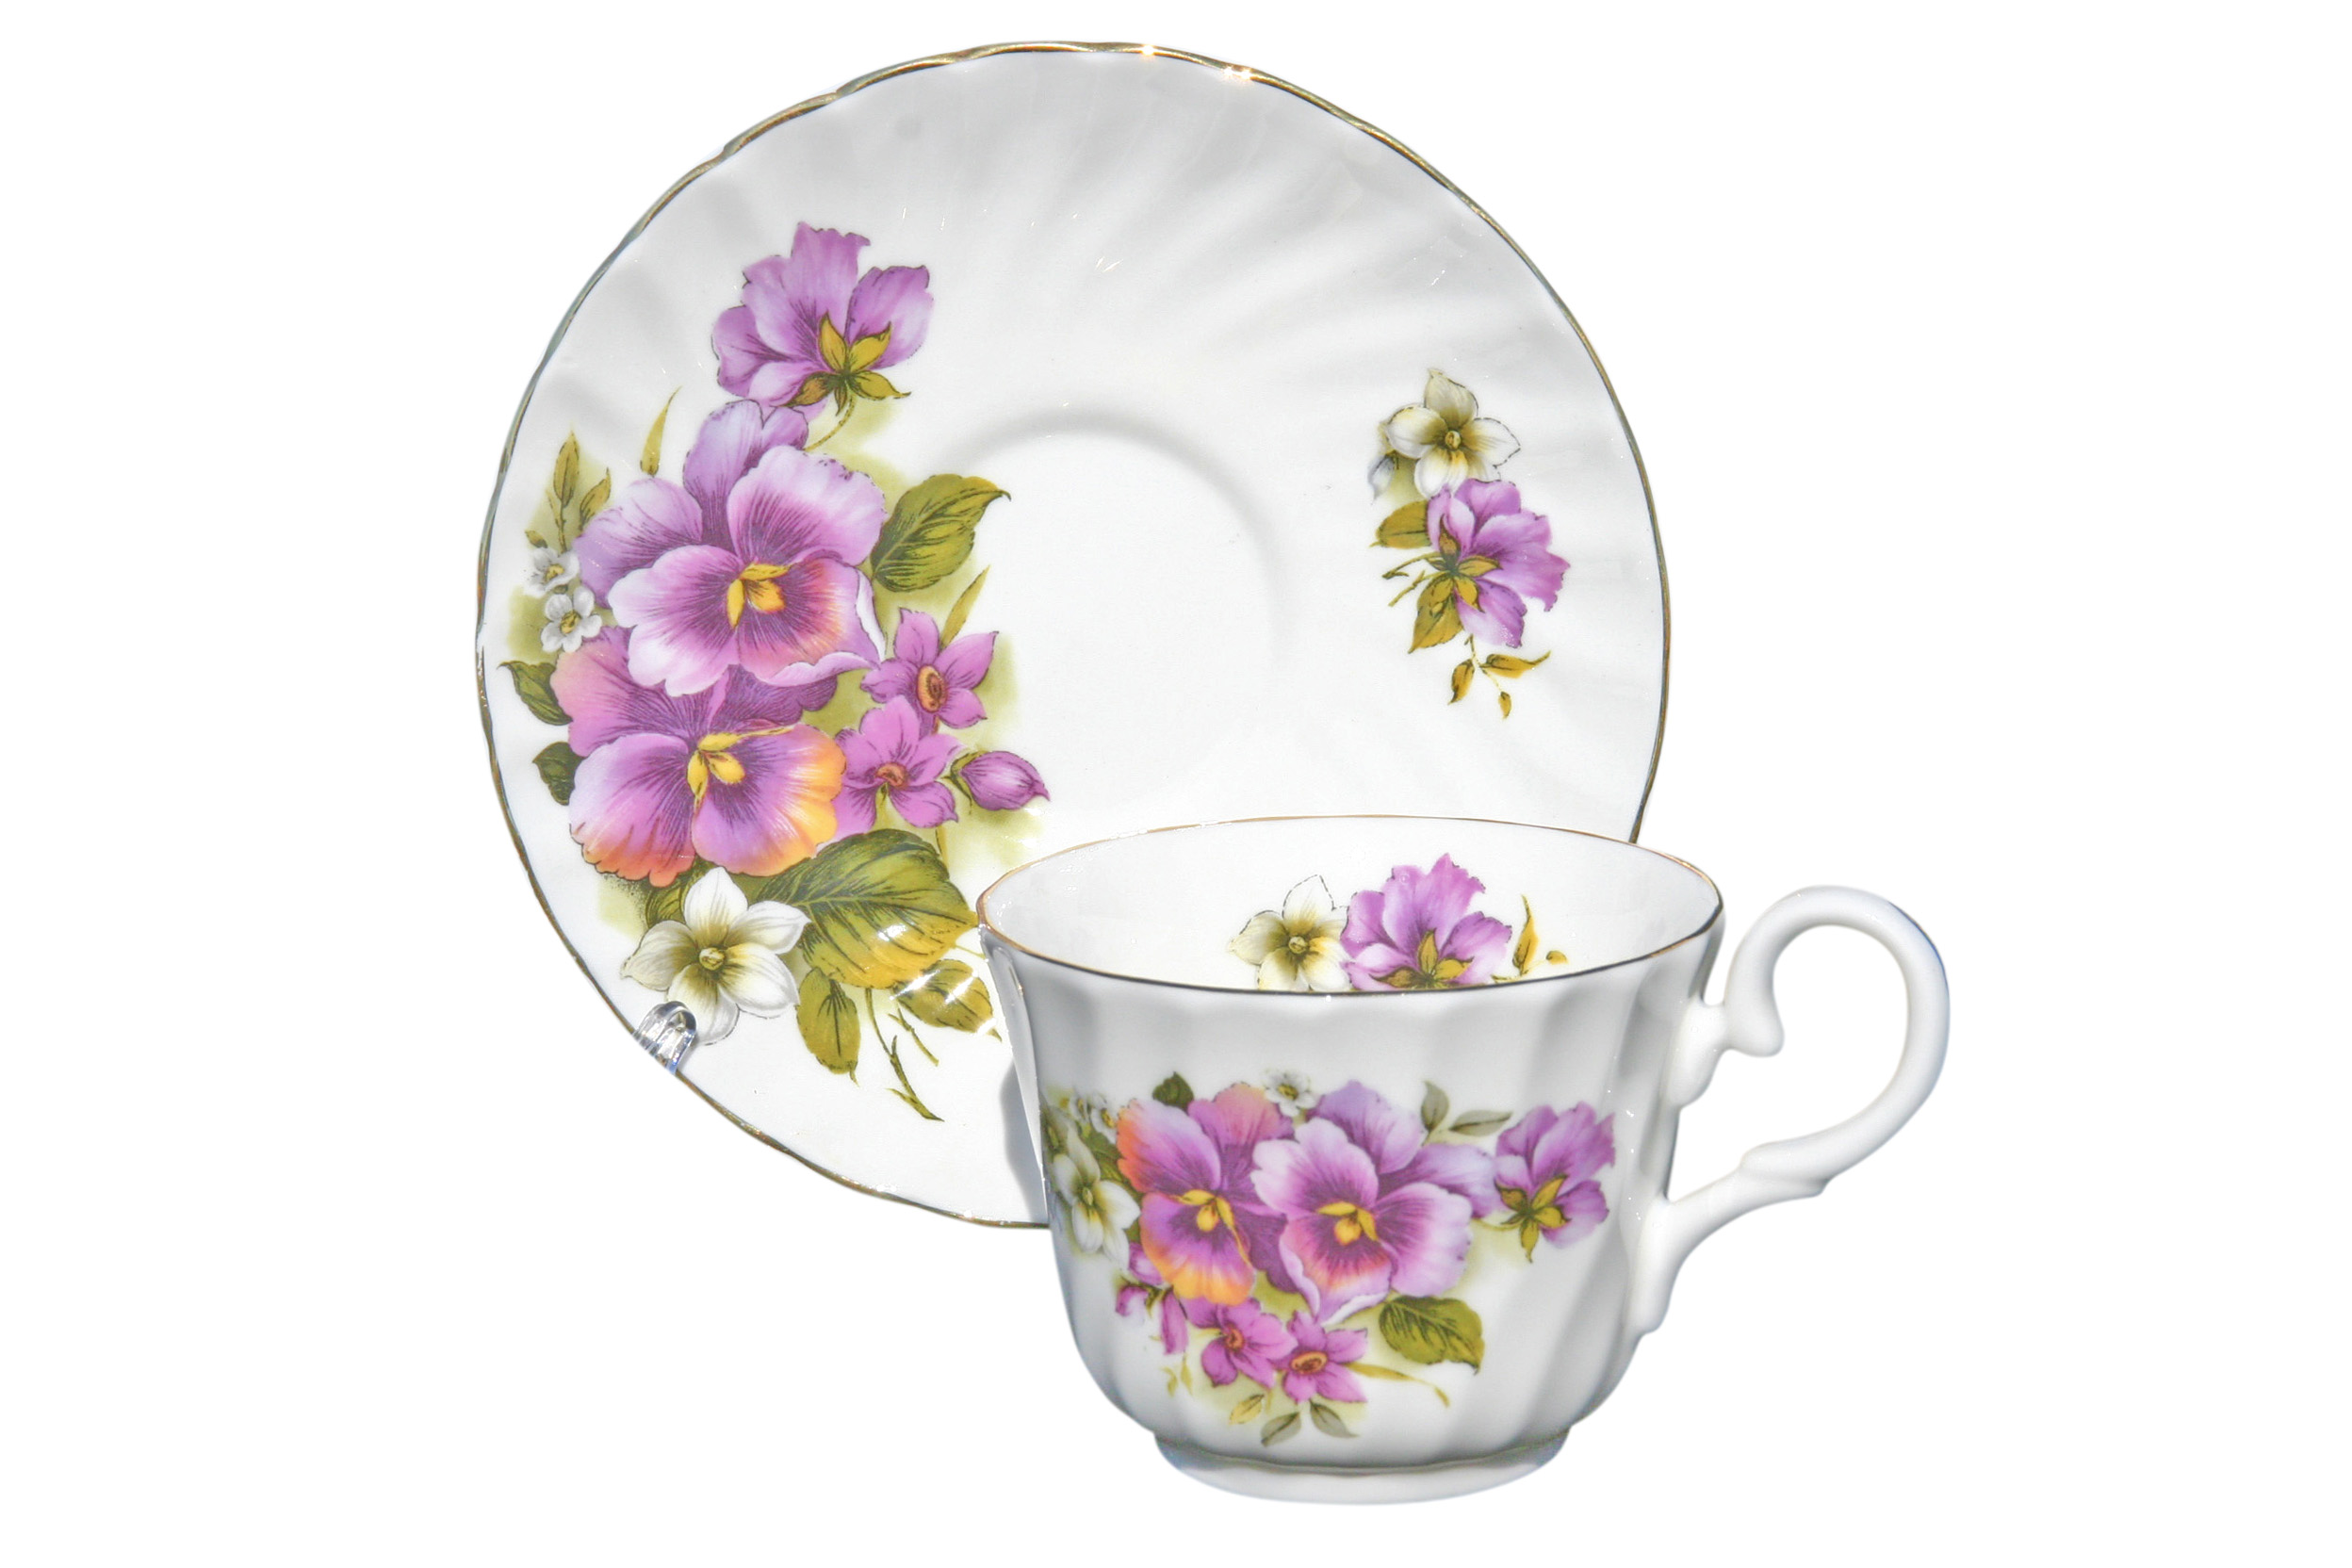 Pansy 1 Cup and Saucer Set